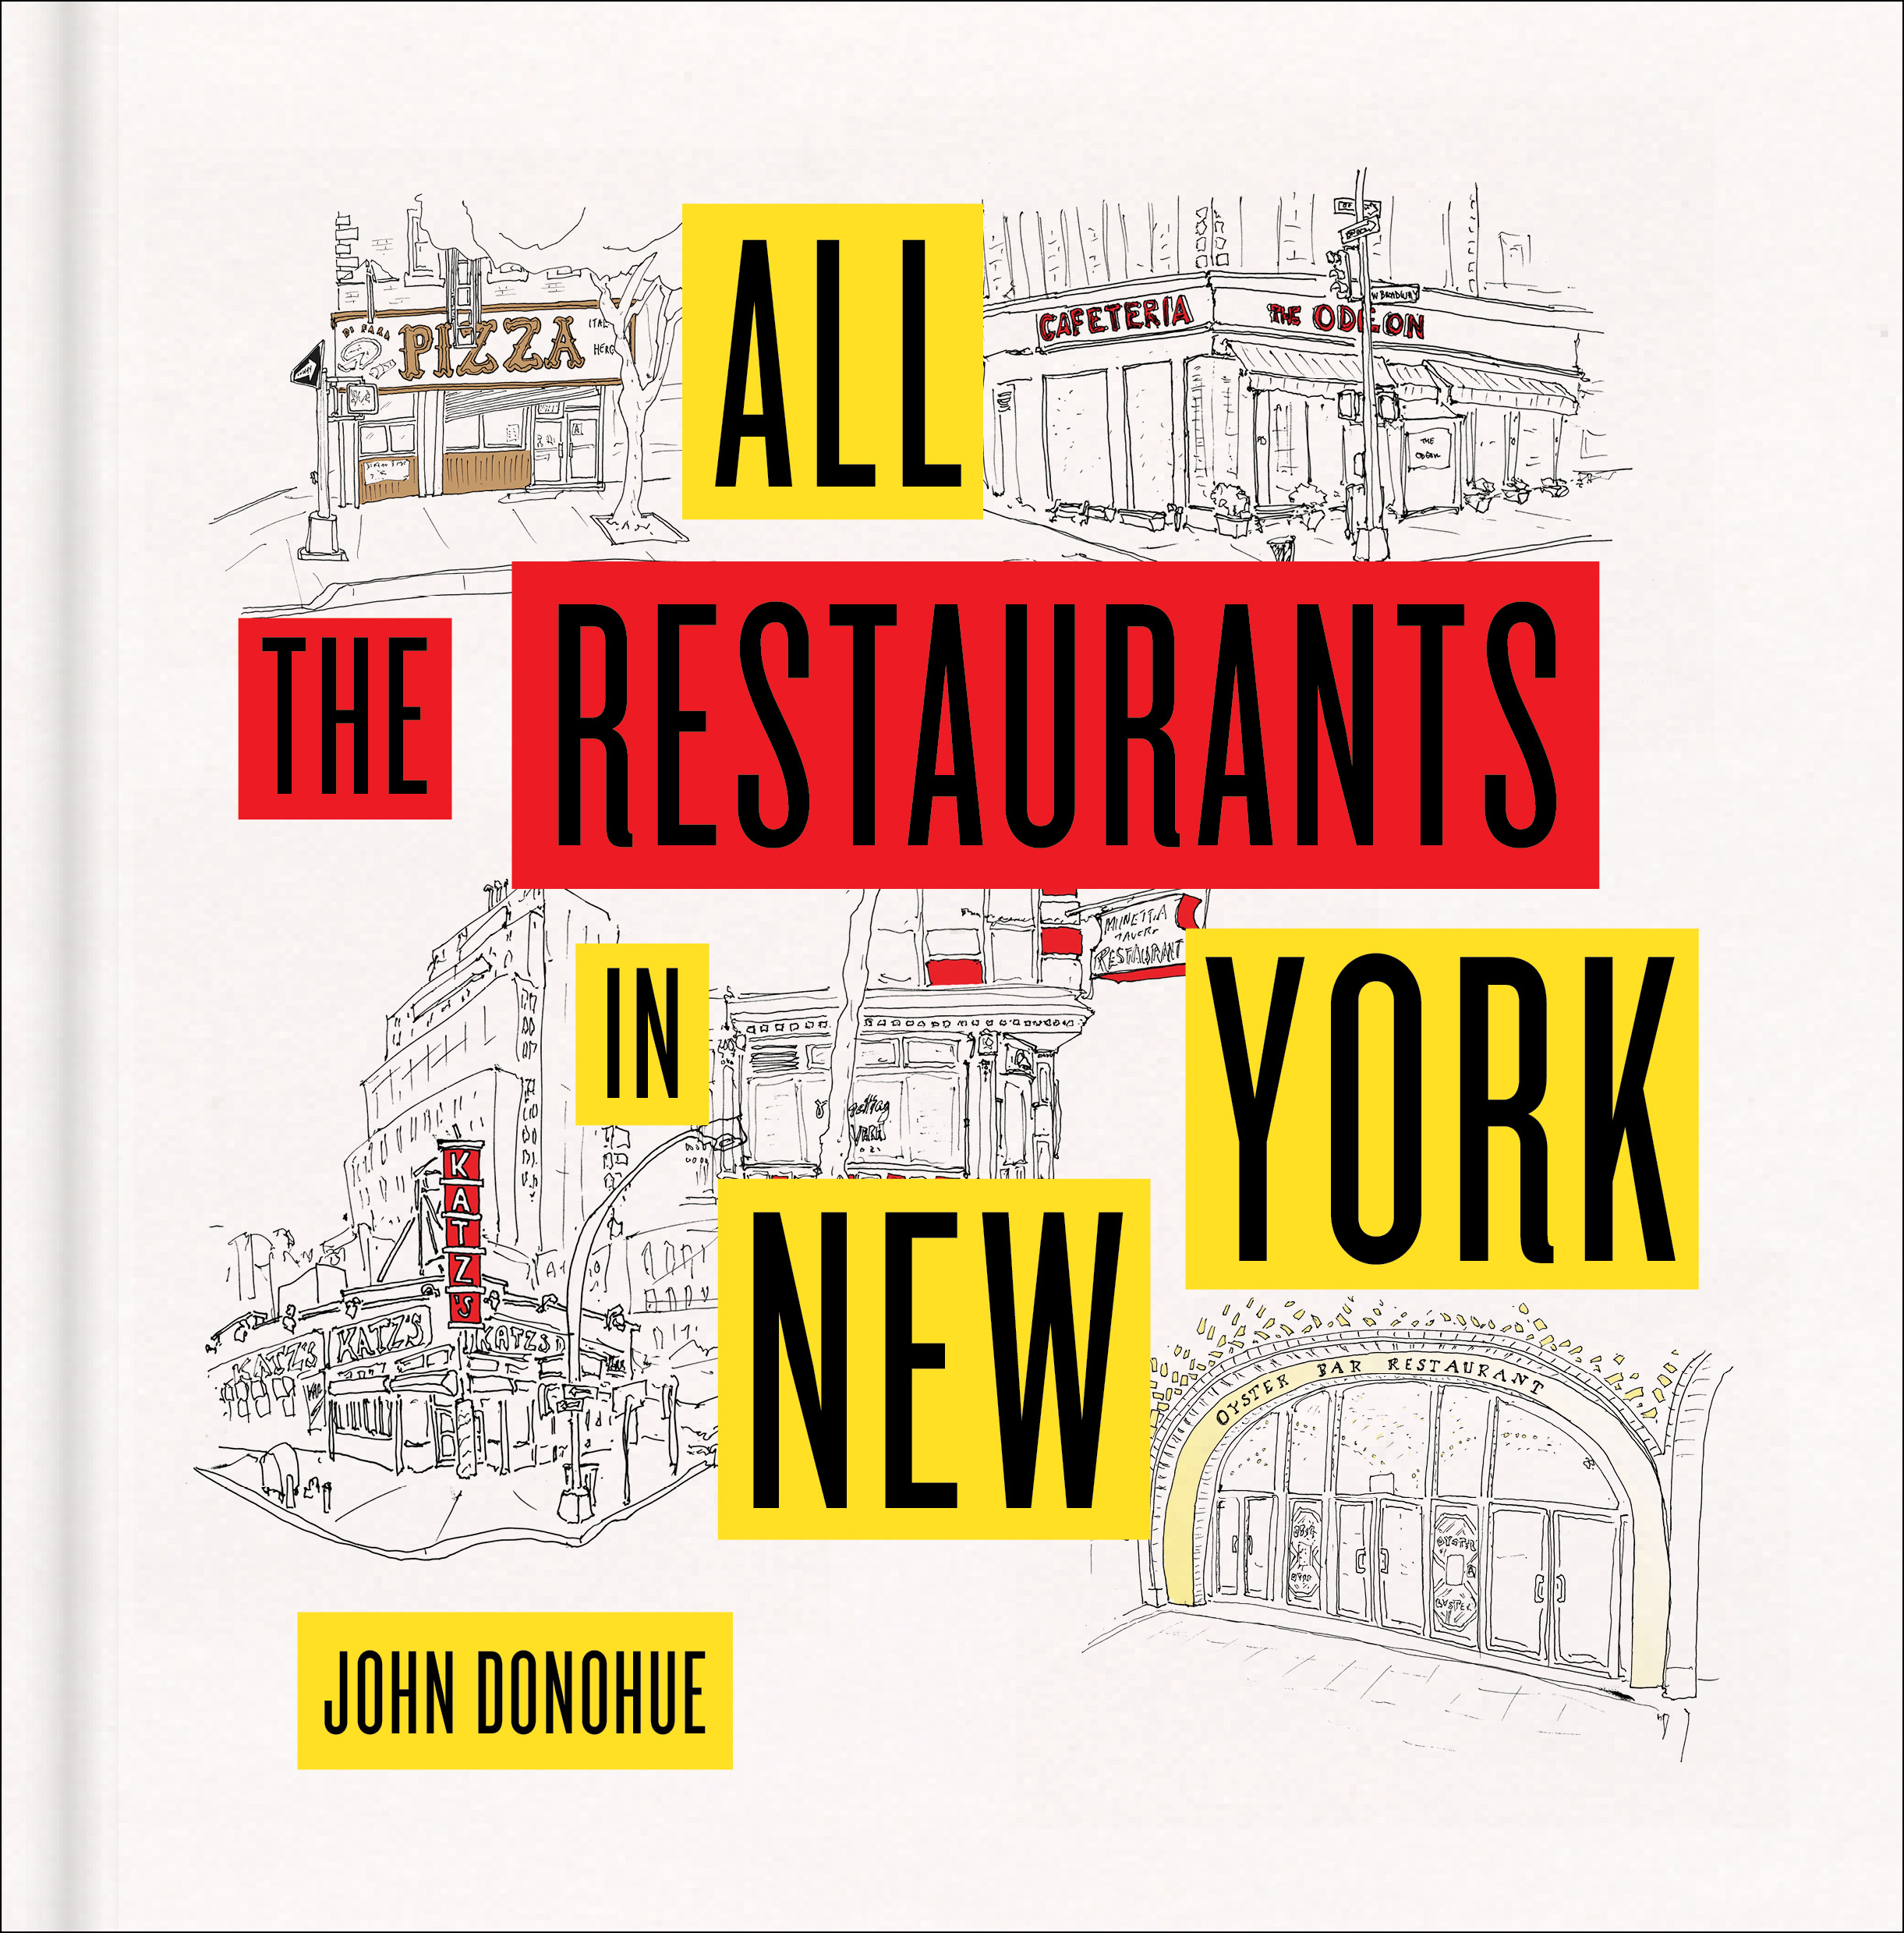 Book Launch: All the Restaurants in New York by John Donohue in conversation with Amanda Kludt